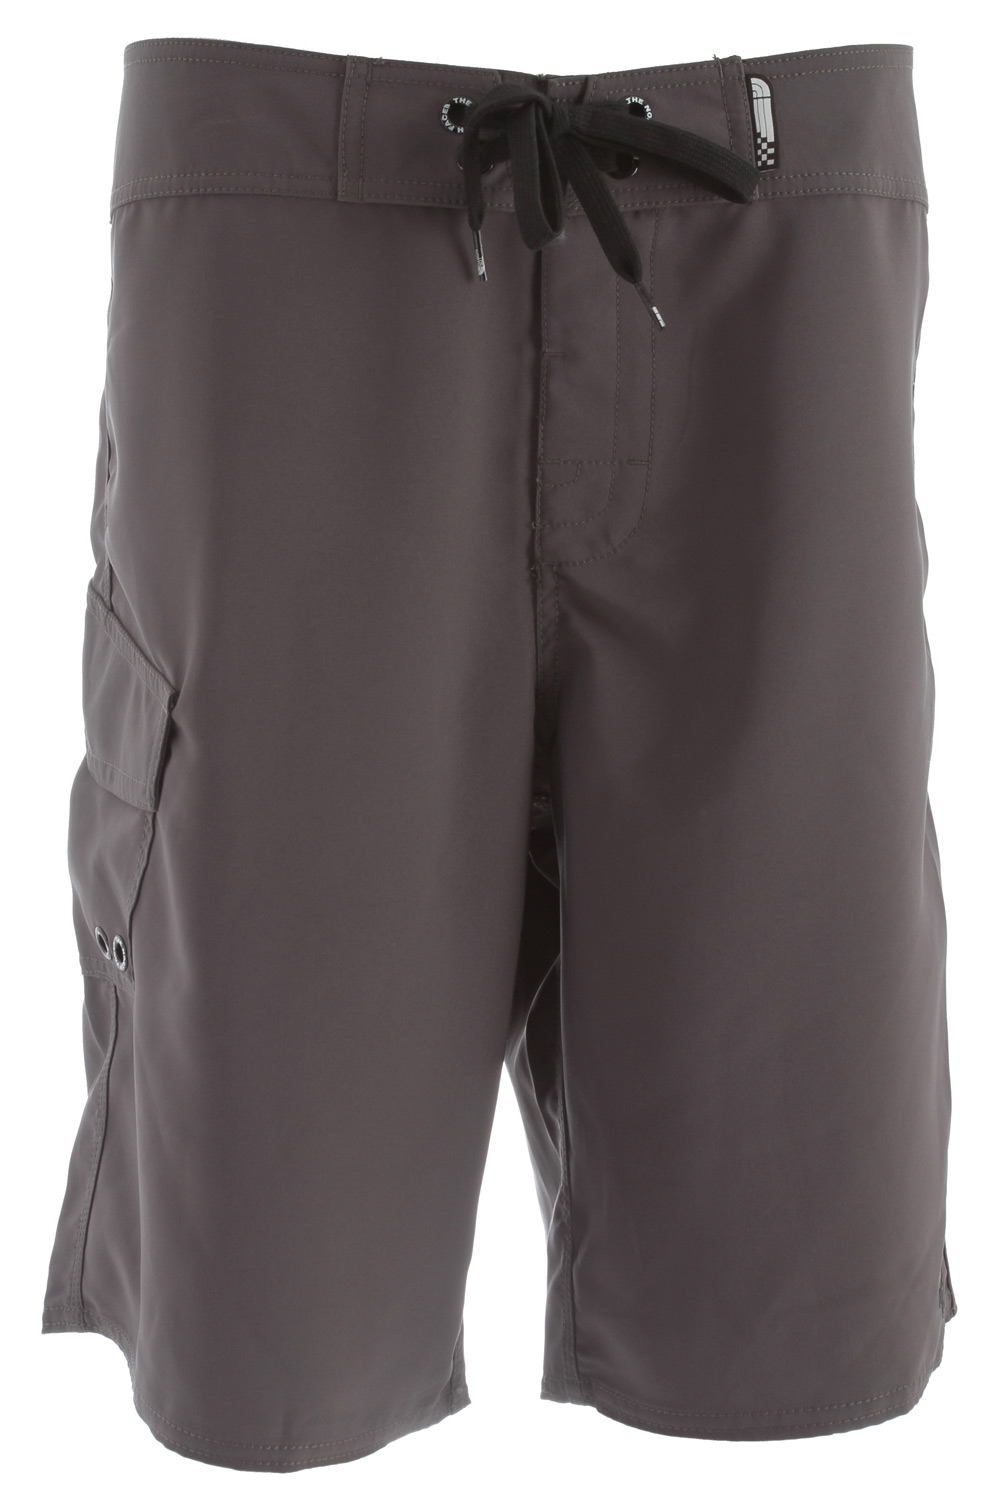 Surf Key Features of the The North Face Hodad Boardshorts: Fabric: 170 g/m2 50% recycled polyester, 50% polyester with mechanical stretch No shirt, no shoes, no problem. A simple, straightforward boardshort that's ready for summer. Ultraviolet protection factor (UPF) 50 Center front drawcord closure with hook-and-loop opening Anti-chlorine 5 ppm Anti-UV Flap cargo pocket with key hook Triple needle reinforcement stitching at outseams - $32.95